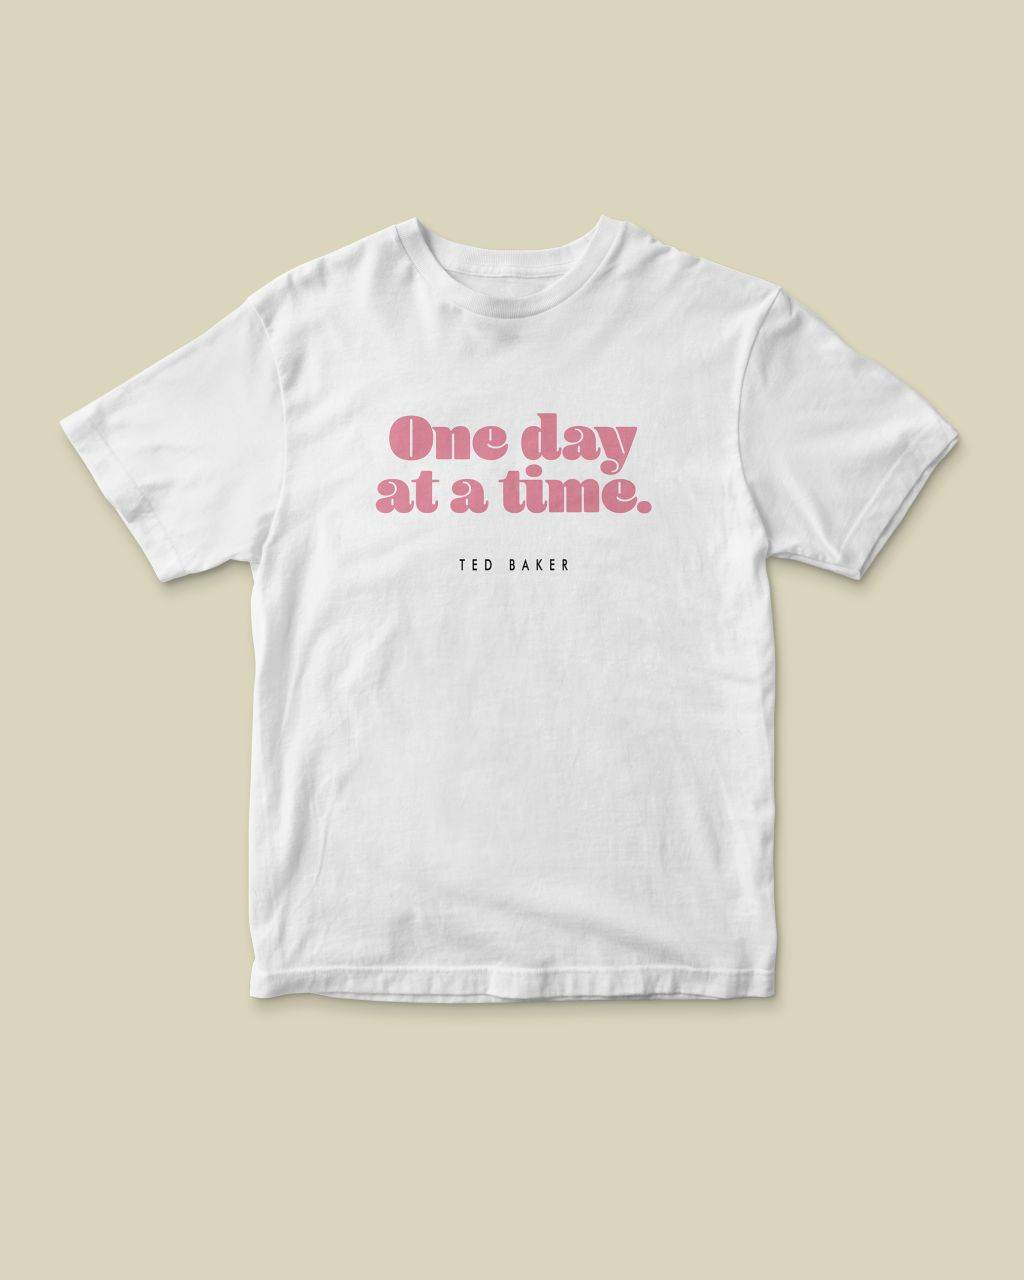 Ted Baker One Day At A Time Charity Cotton T-shirt  - White - Size: Extra Large